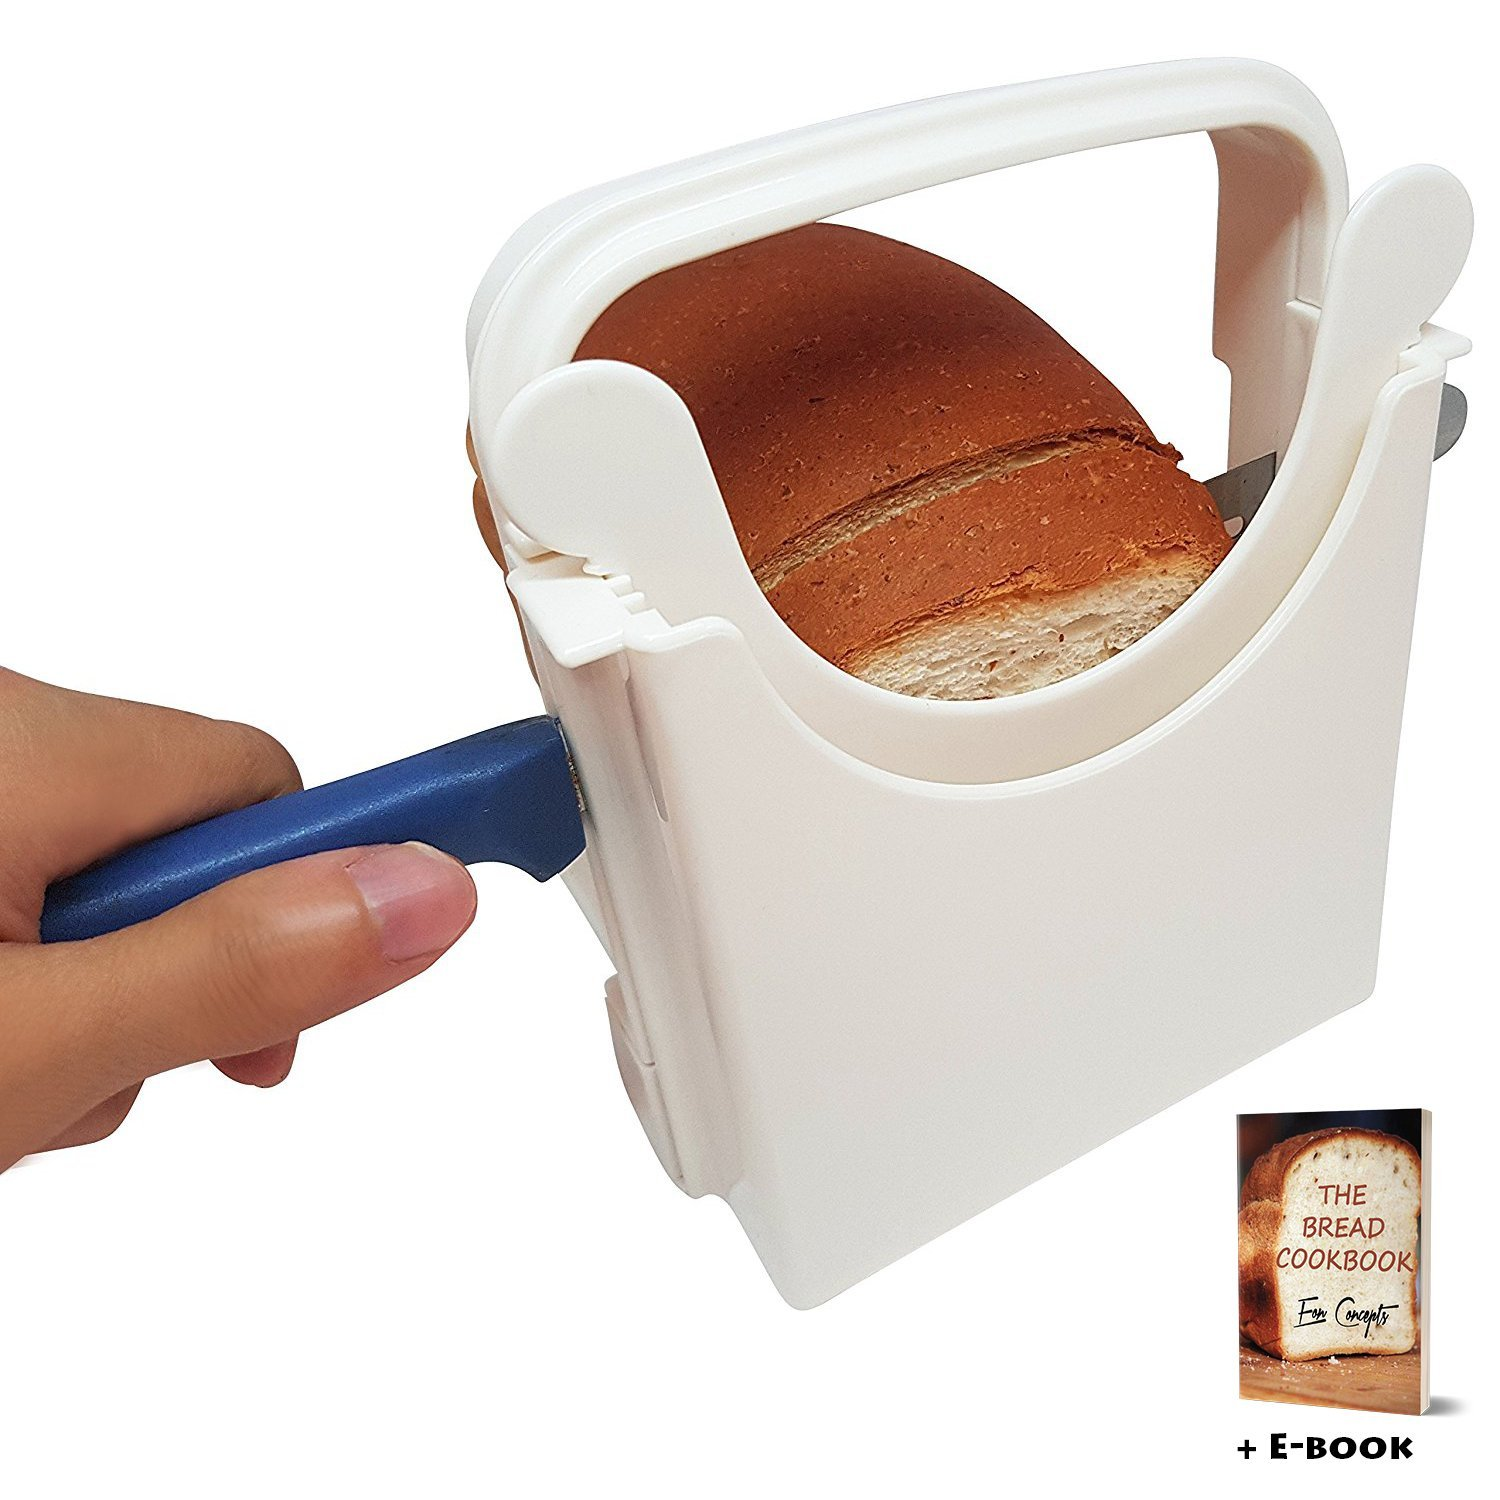 Eon Concepts Bread Slicer Guide For Homemade Bread With Mini Bread Recipe E-Book | Loaf Cutter Machine - Foldable Adjustable & Customizable to 5 Thickness | Bagel / Sandwich / Toast Slicer